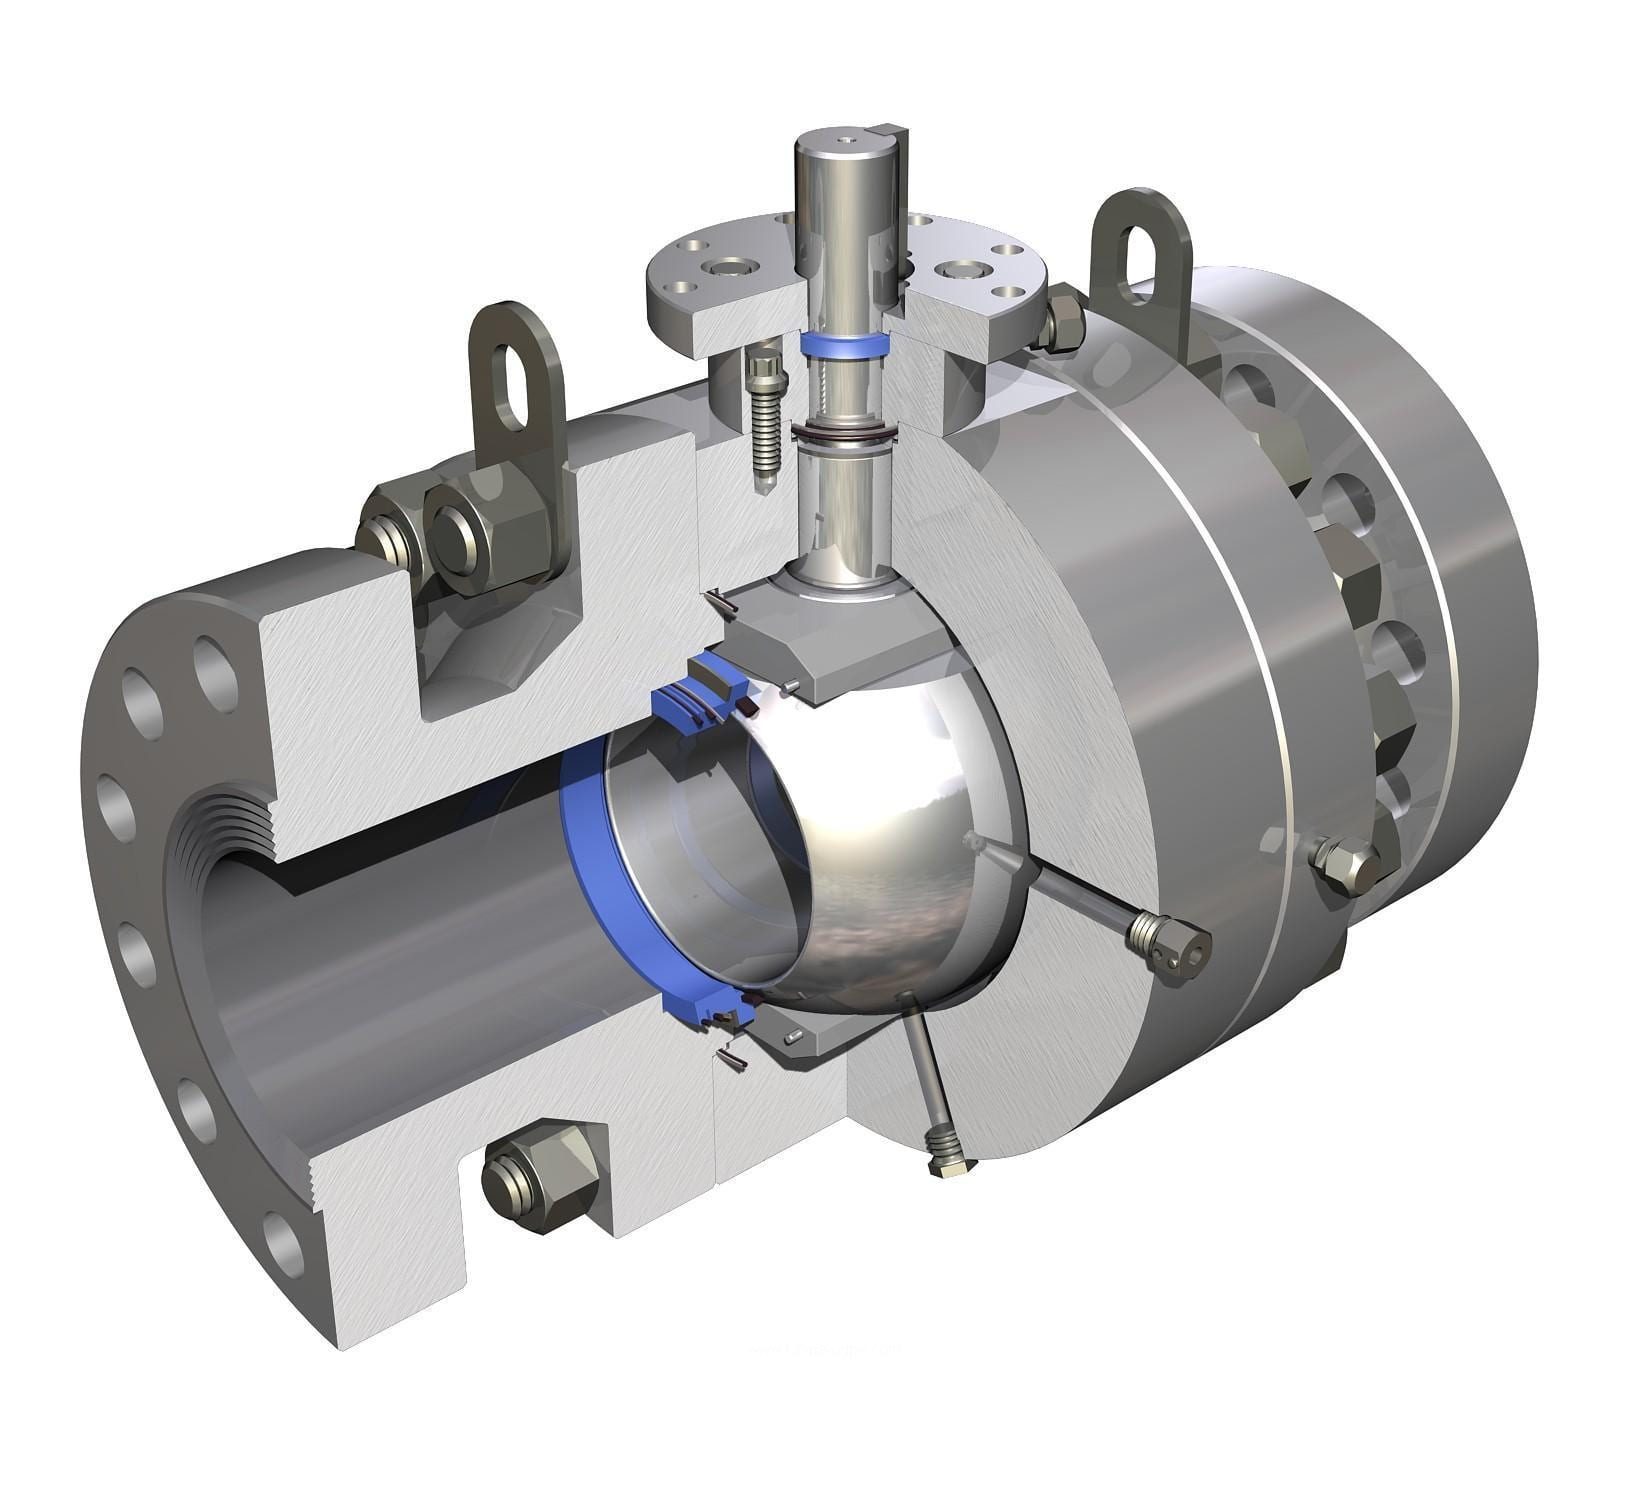 Water Distribution | Valve Modes of Operation